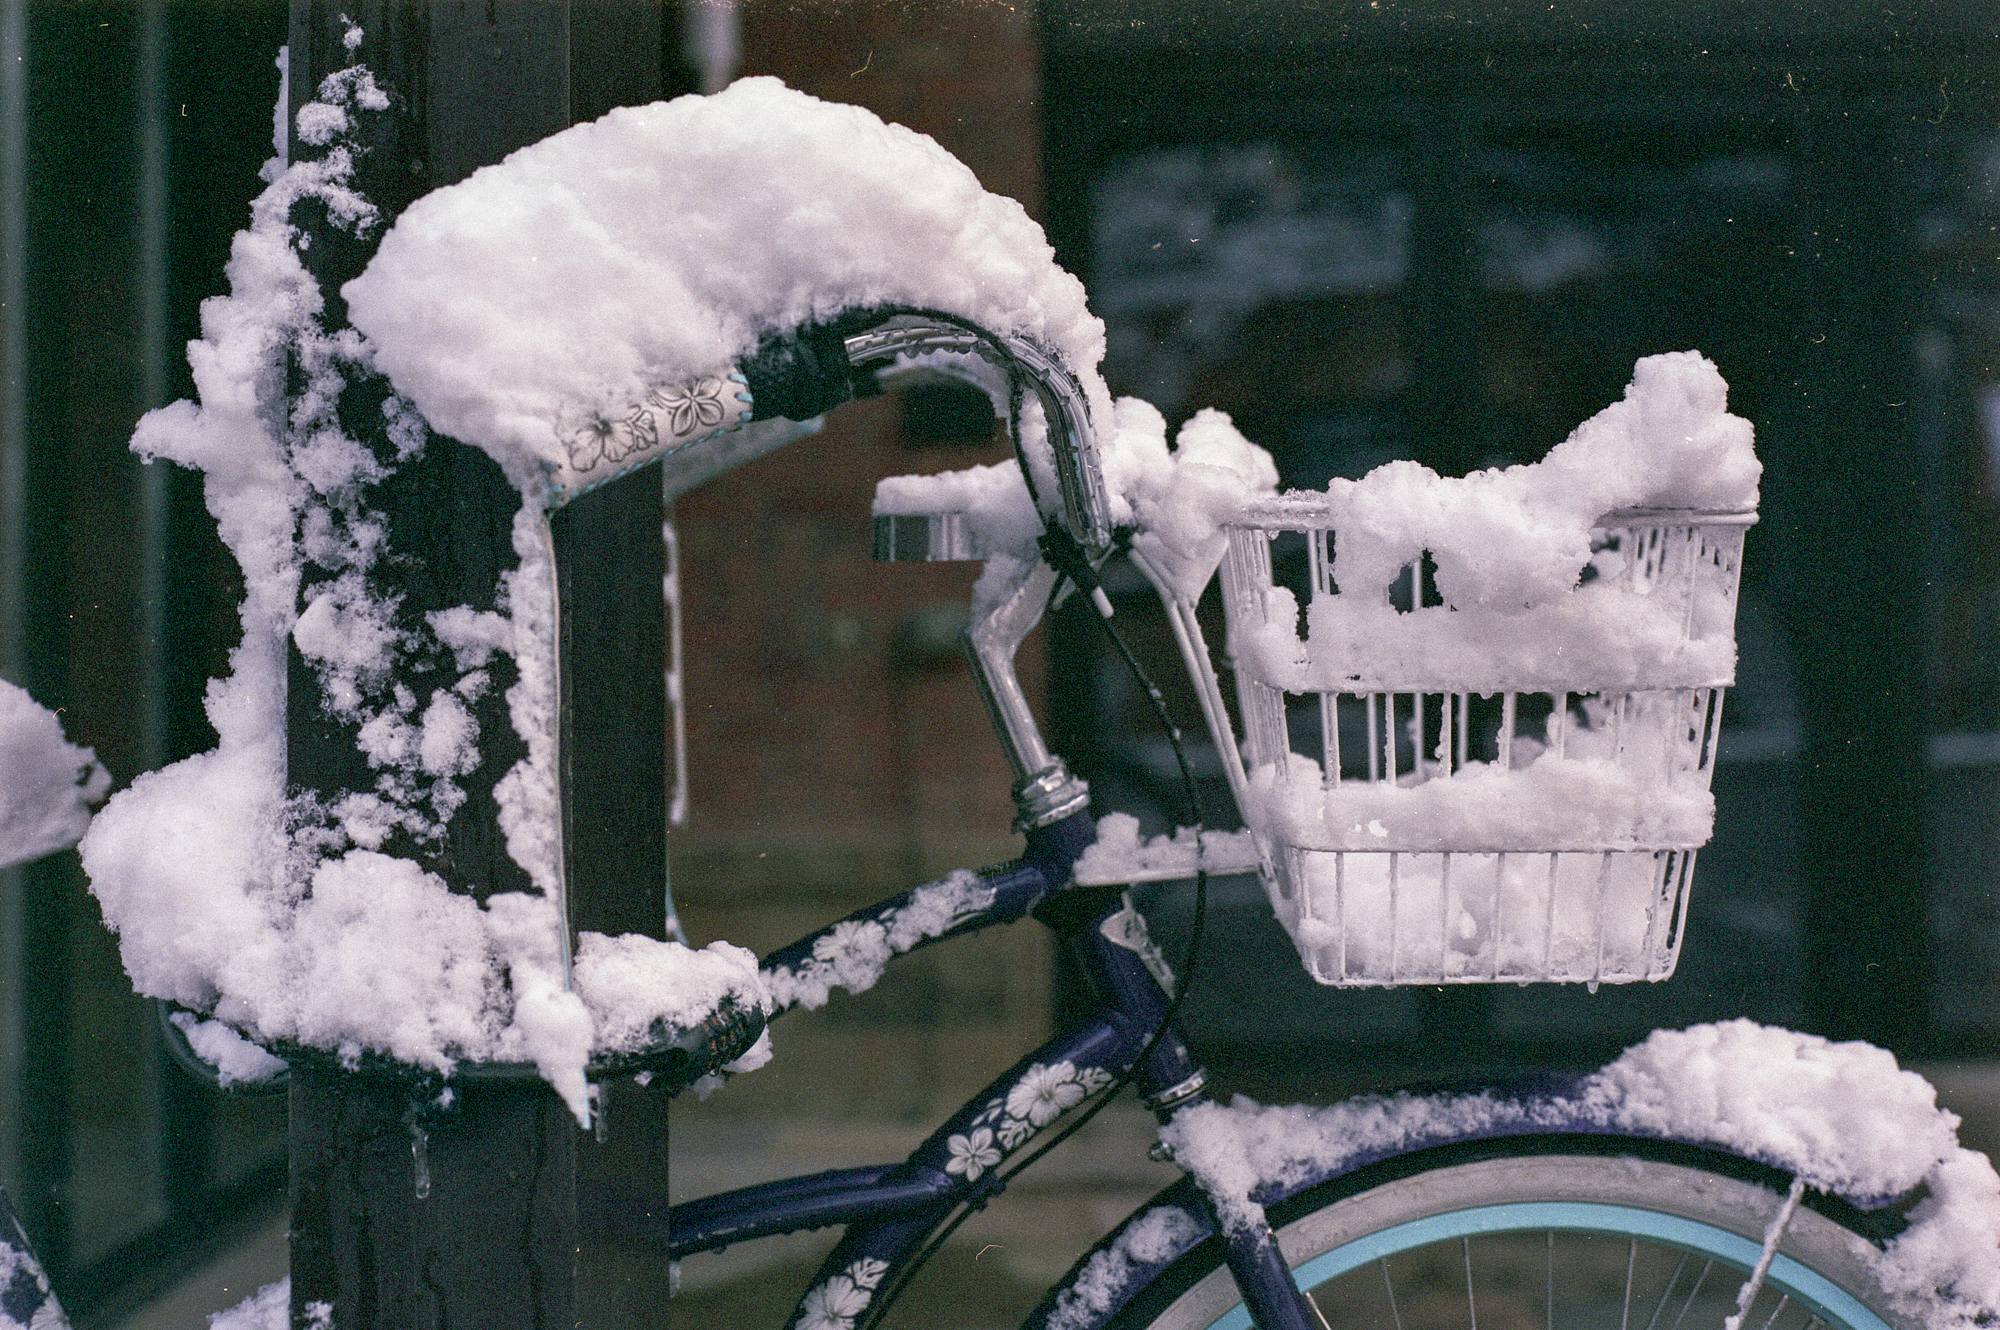 Film_aspen_bike_snow.jpg